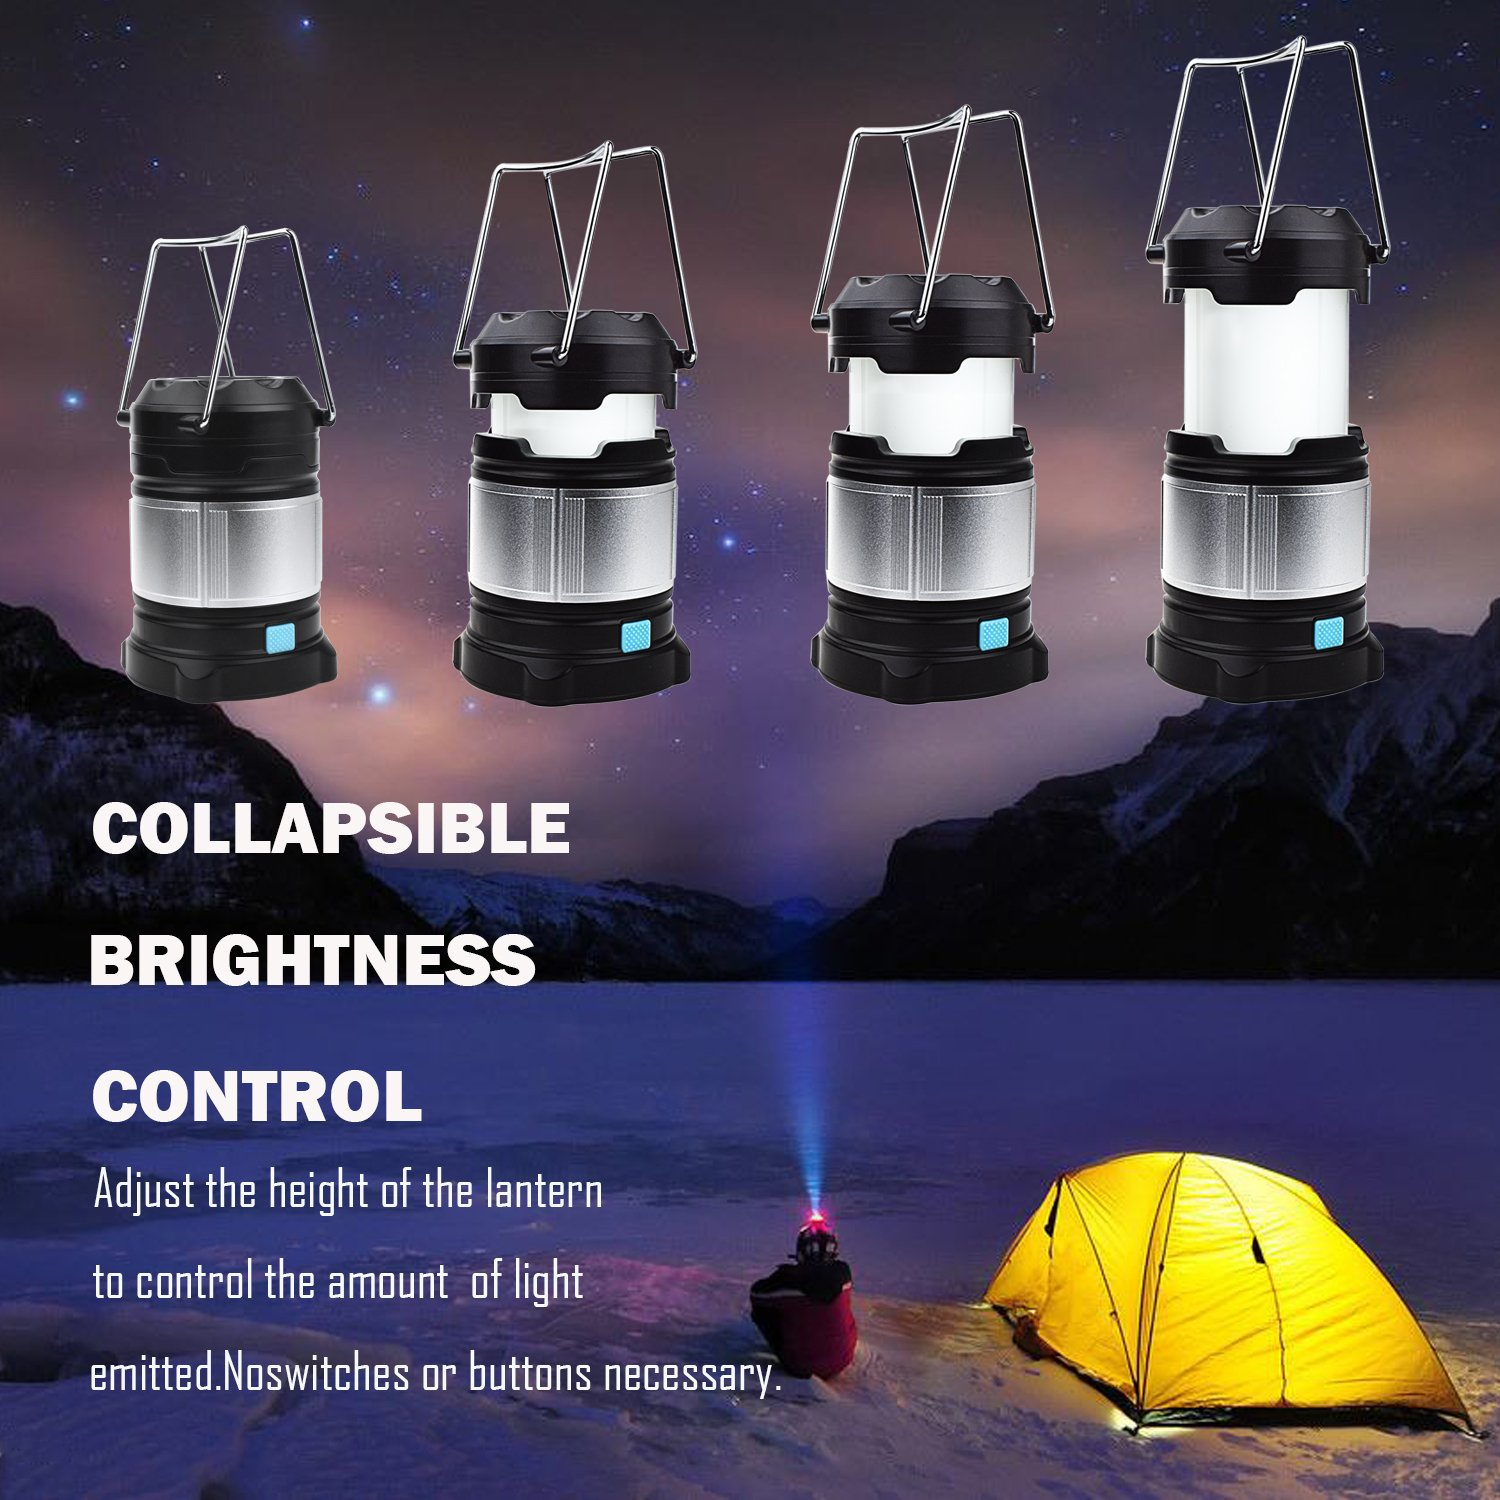 Alcoon Rechargeable LED Camping Lantern Light Lamp with 5600mAh Power Bank, Portable Collapsible Waterproof Outdoor Light with 18650 Li-ion Batteries for Camping Traveling Tent, Emergency, Outage by Alcoon (Image #2)